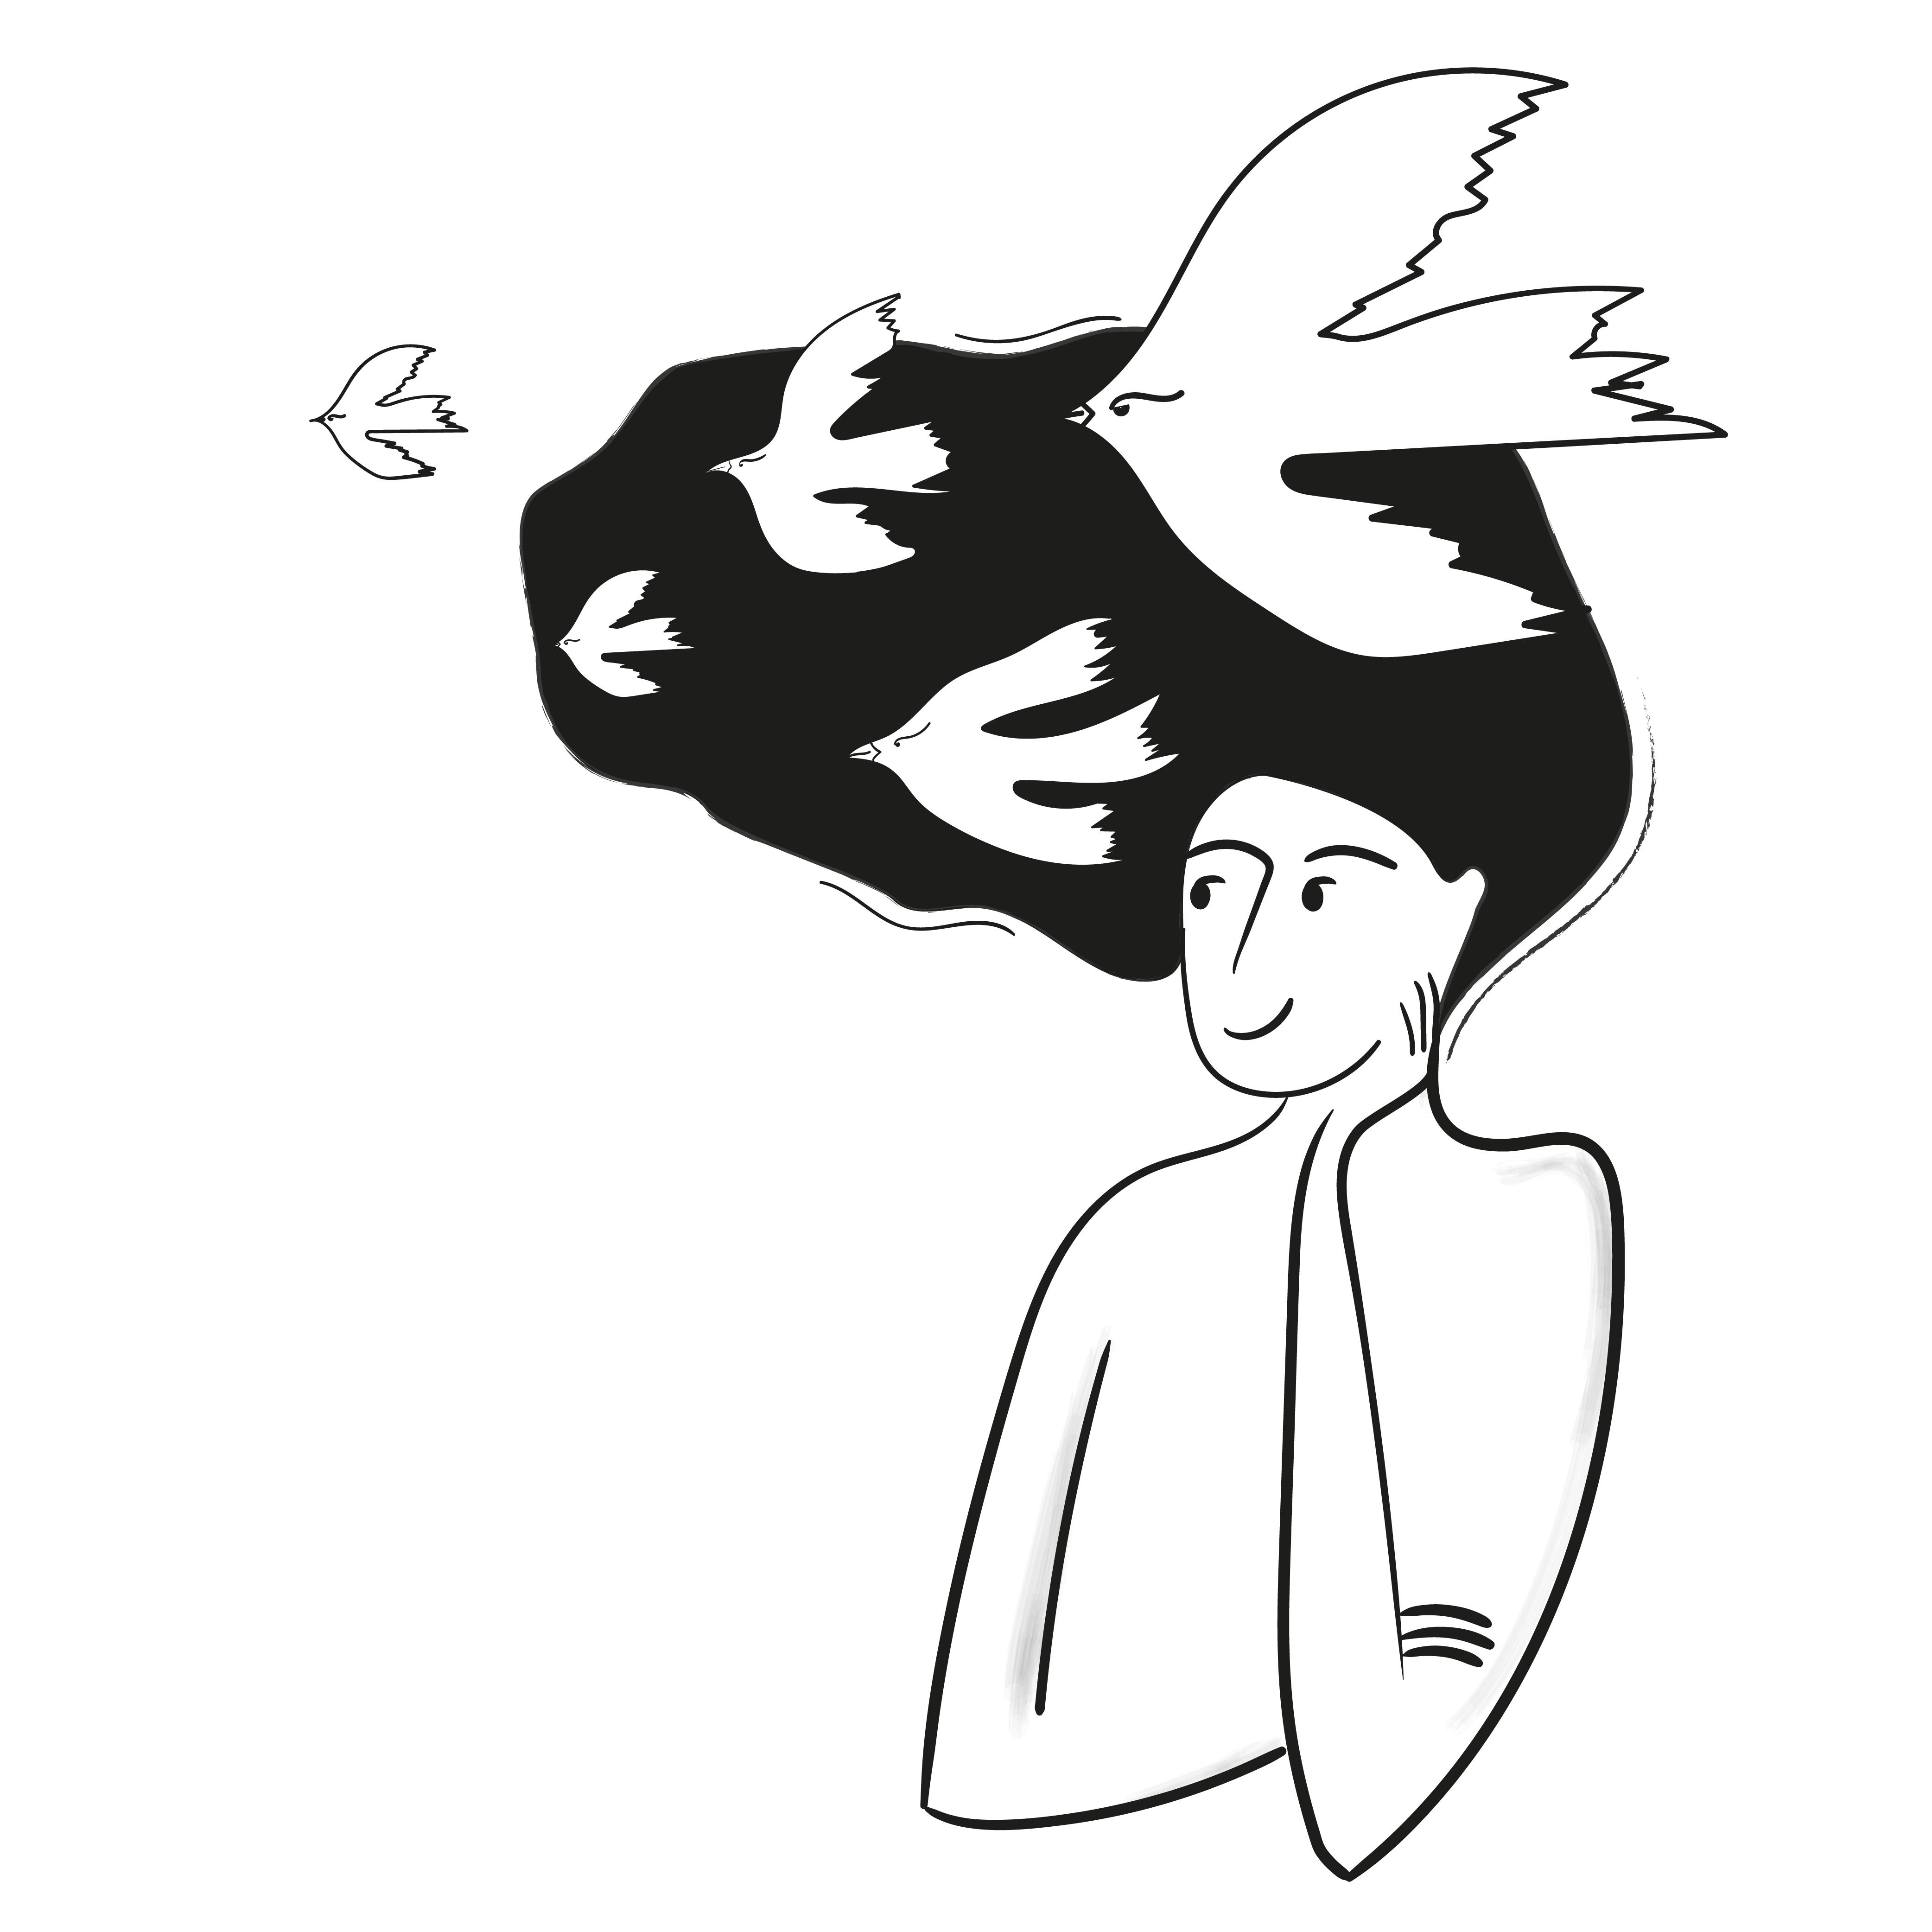 A person with birds flying away from their head as they look content.